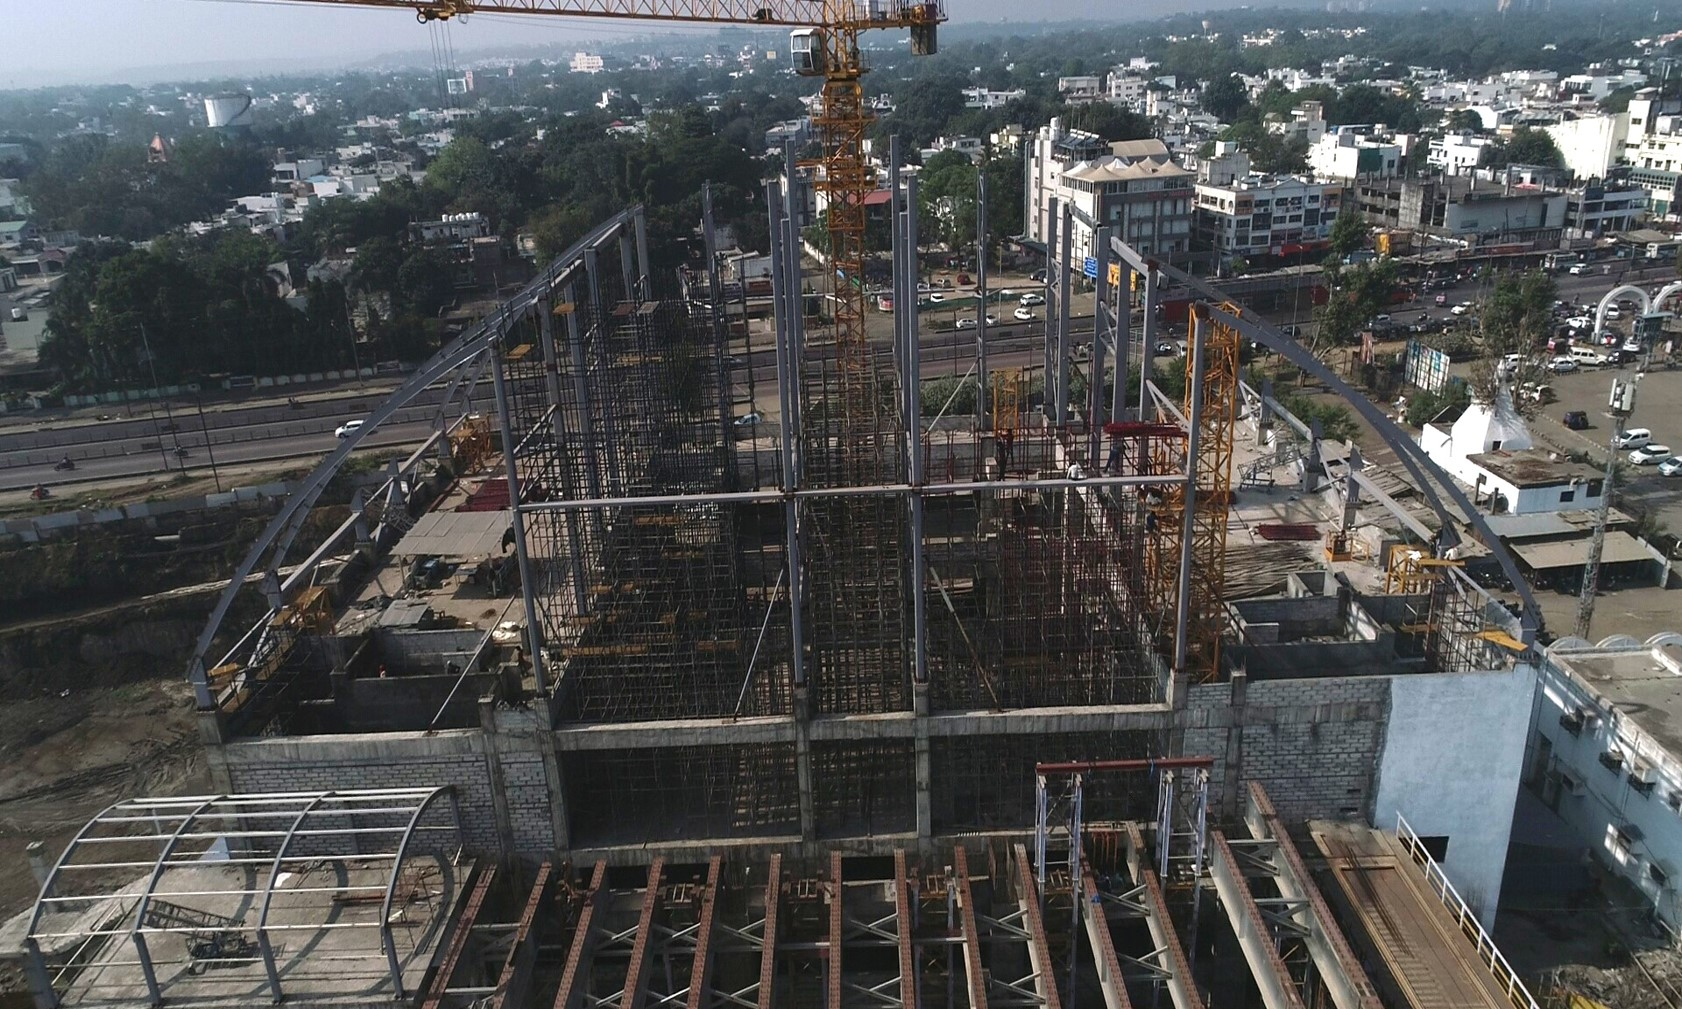 West building Dome erection at Habibganj Railway Station